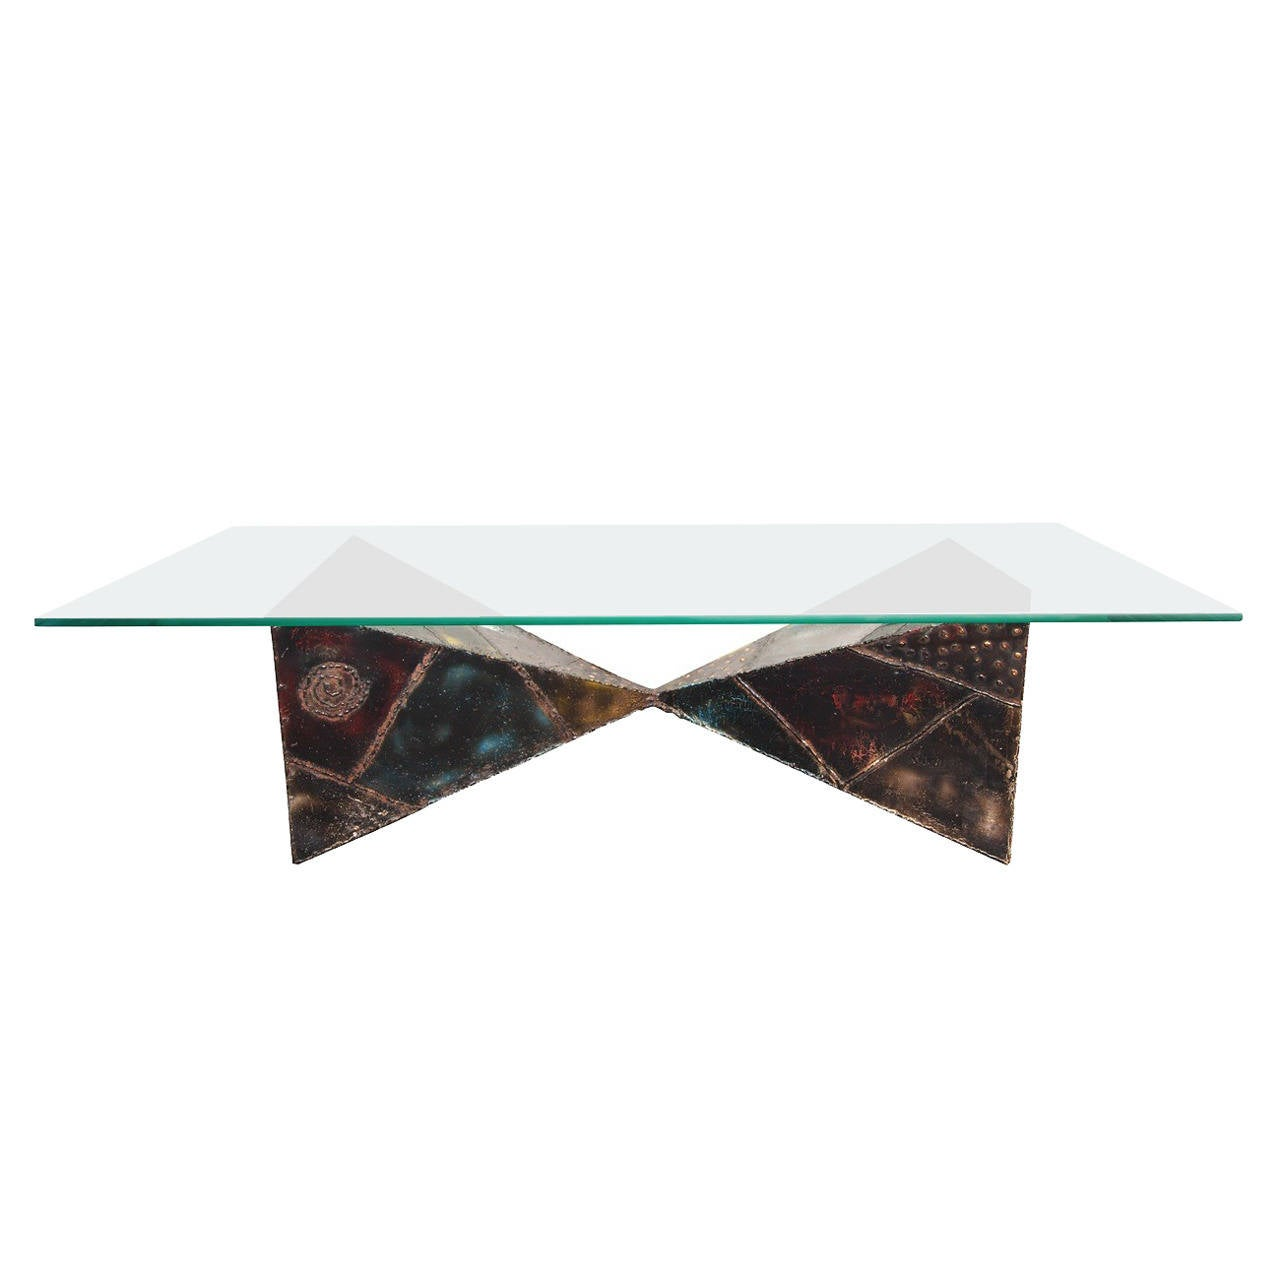 Iconic paul evans brutalist coffee table at 1stdibs for Iconic tables